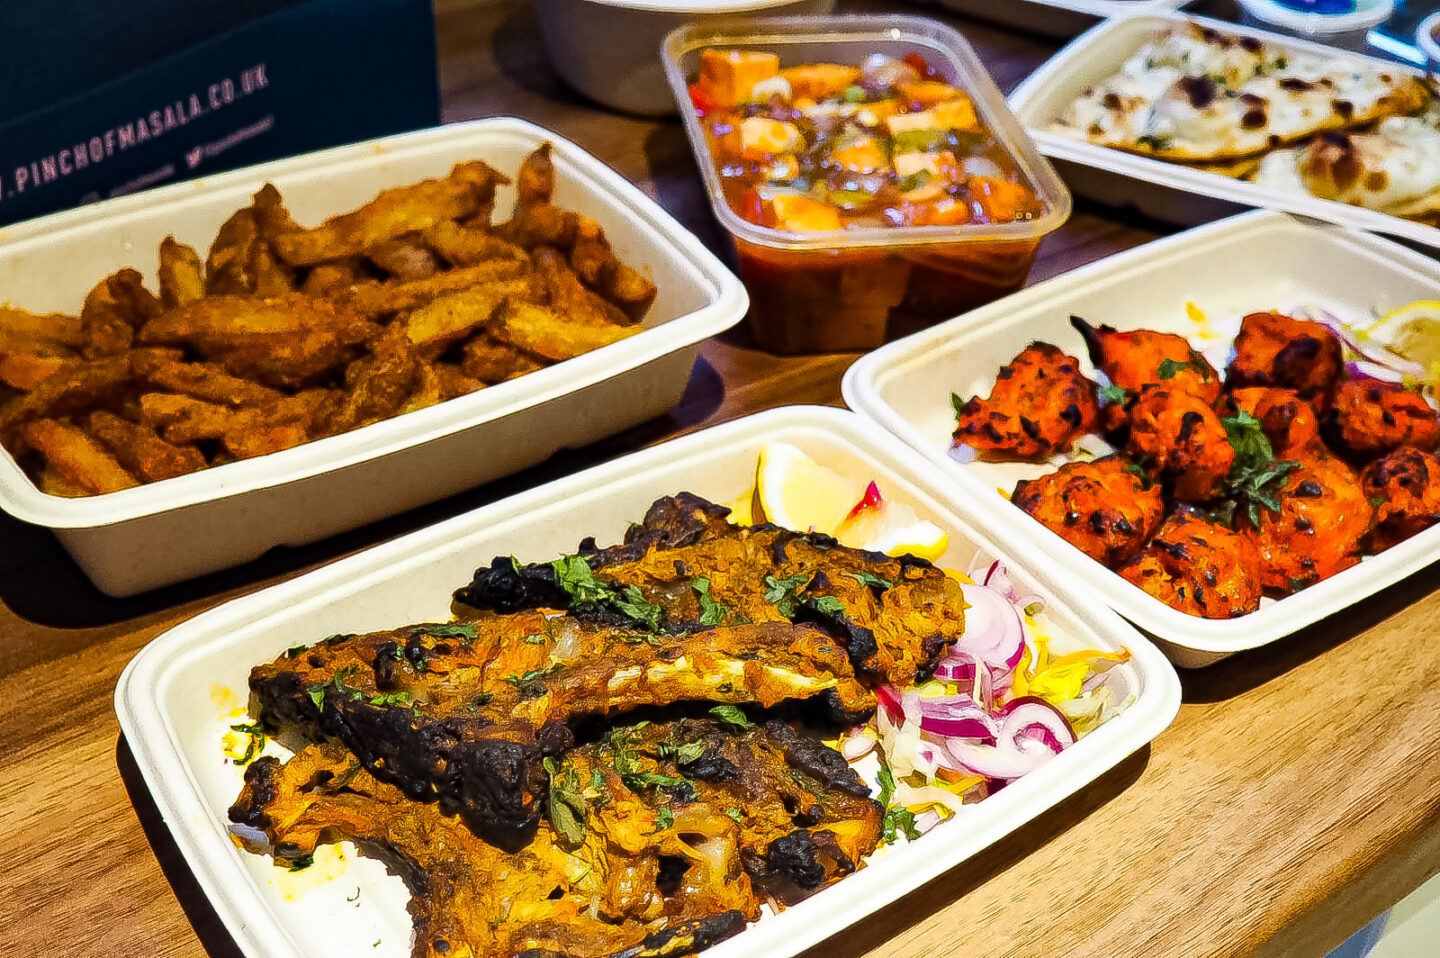 Lamb chops, tandoori soya, masala chips and chilli paneer - Pinch of Masala